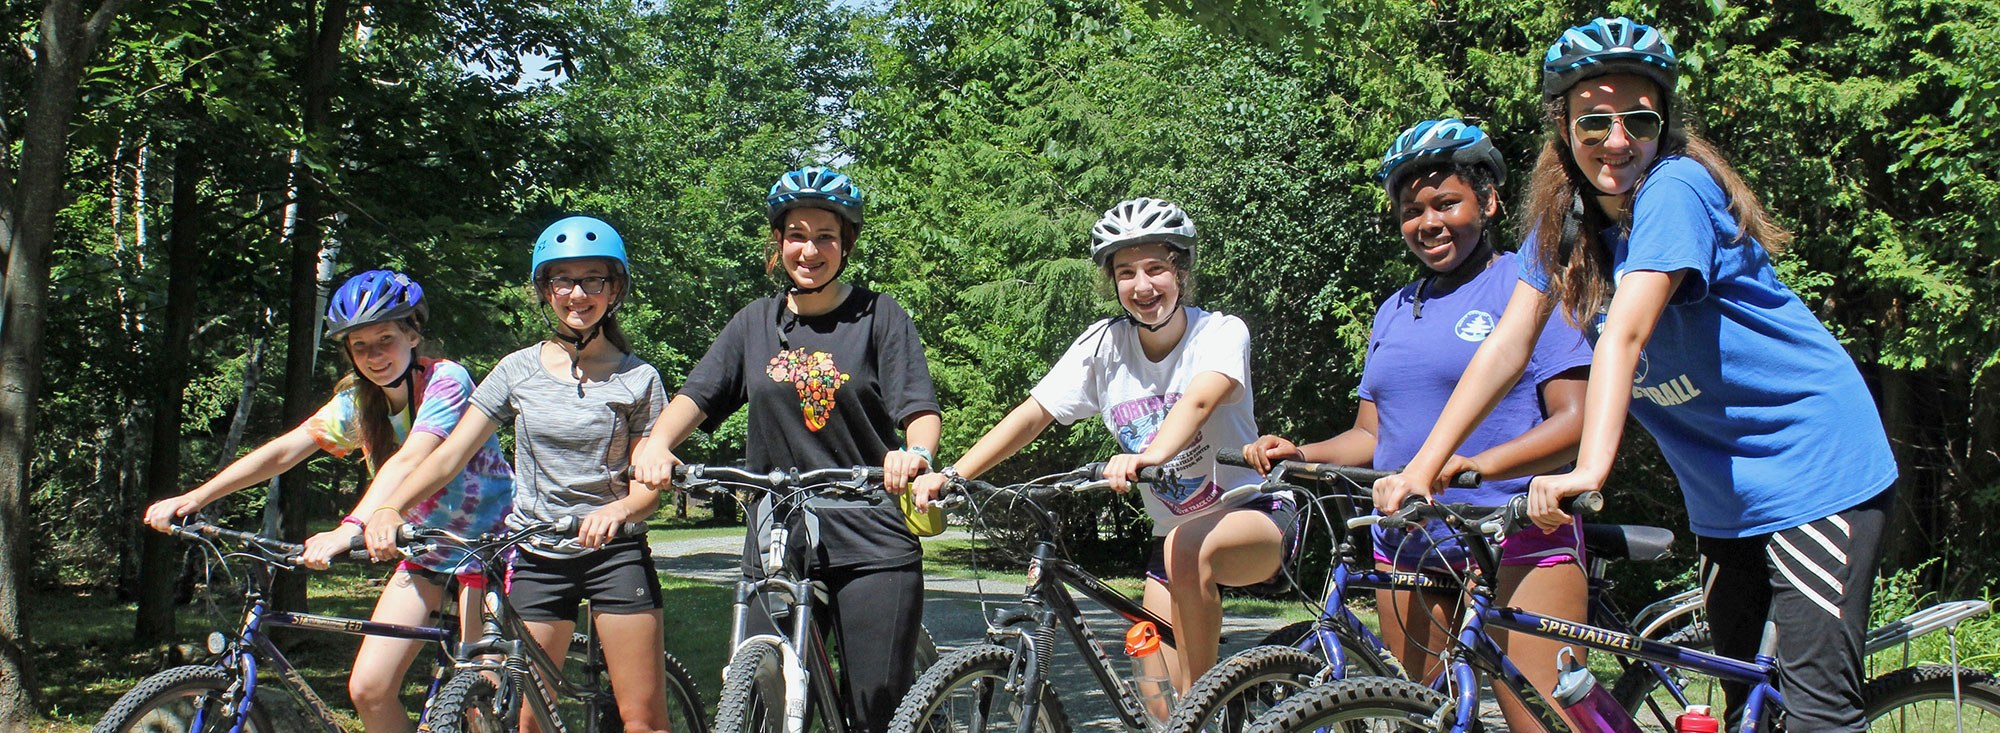 Whippoorwill  Campers on Bikes